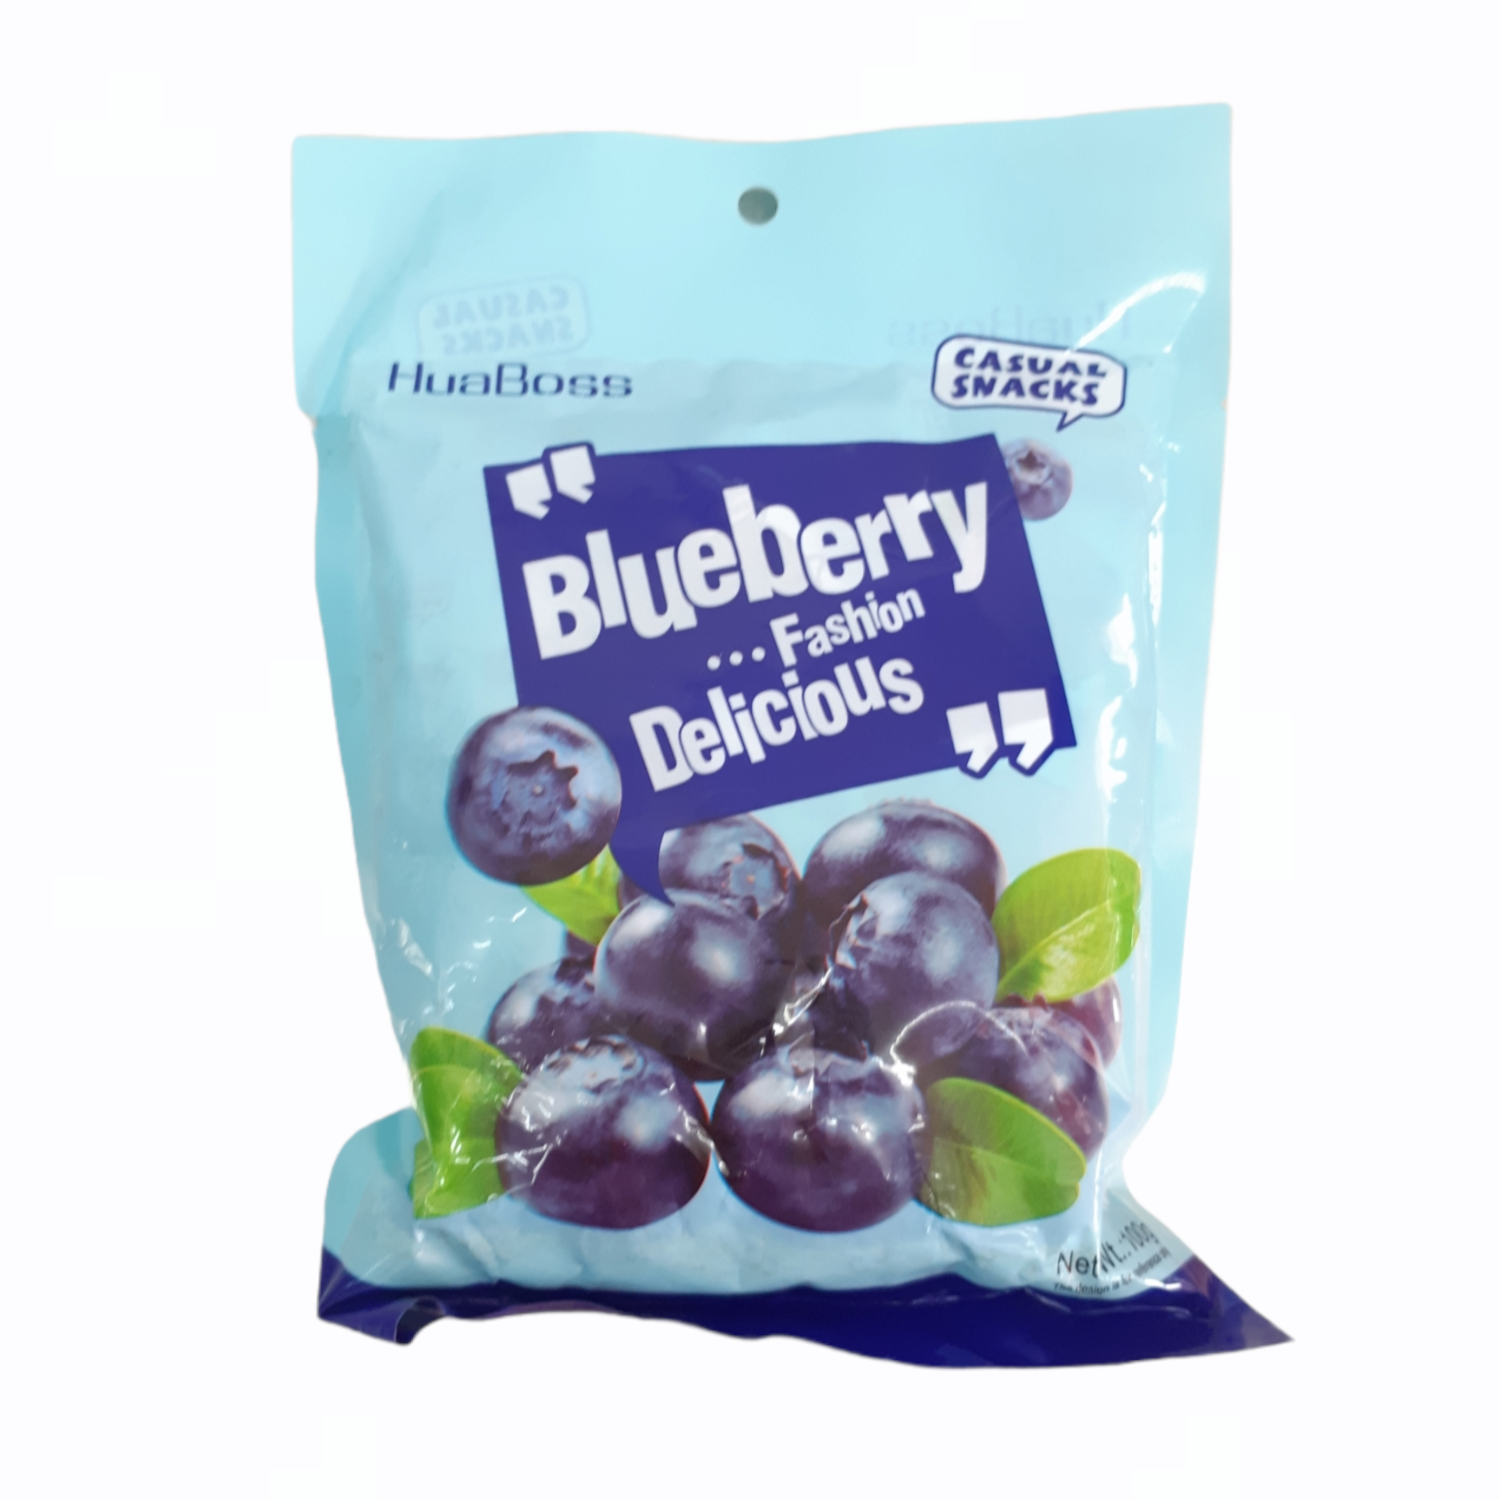 Blueberry sấy - Delicious 100g